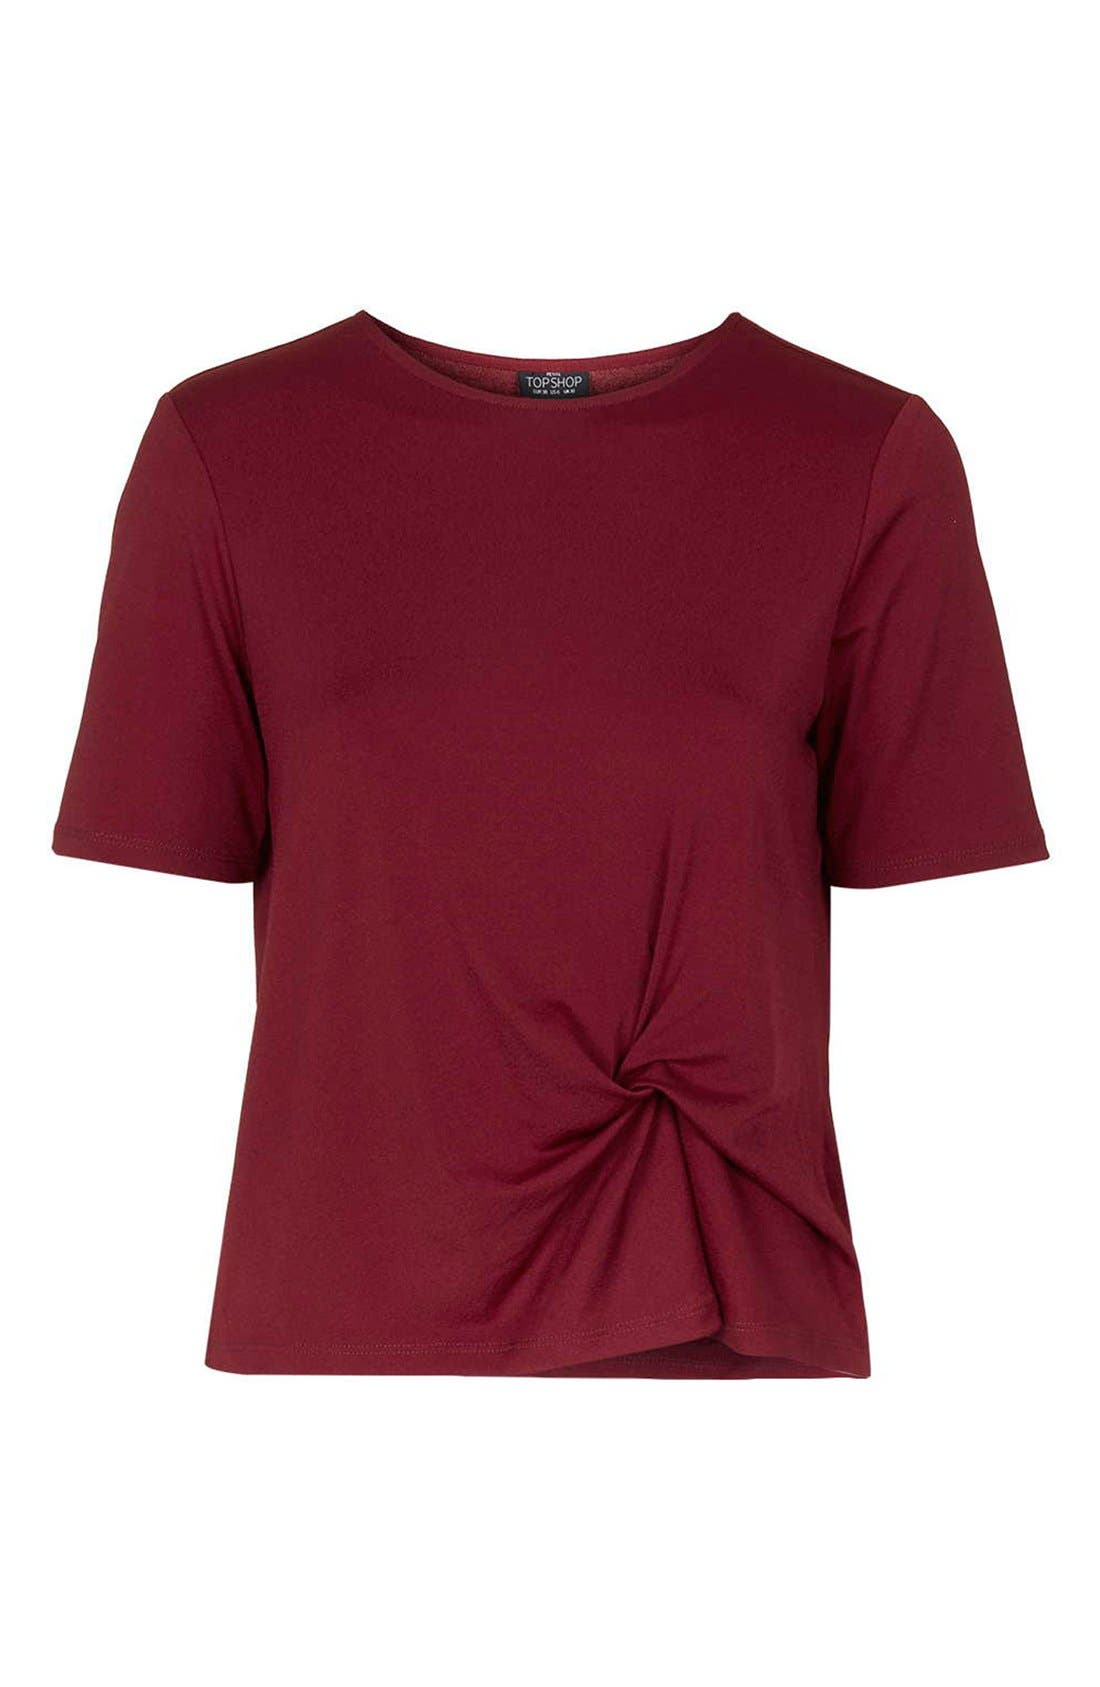 Alternate Image 4  - Topshop Twist Front Tee (Petite)